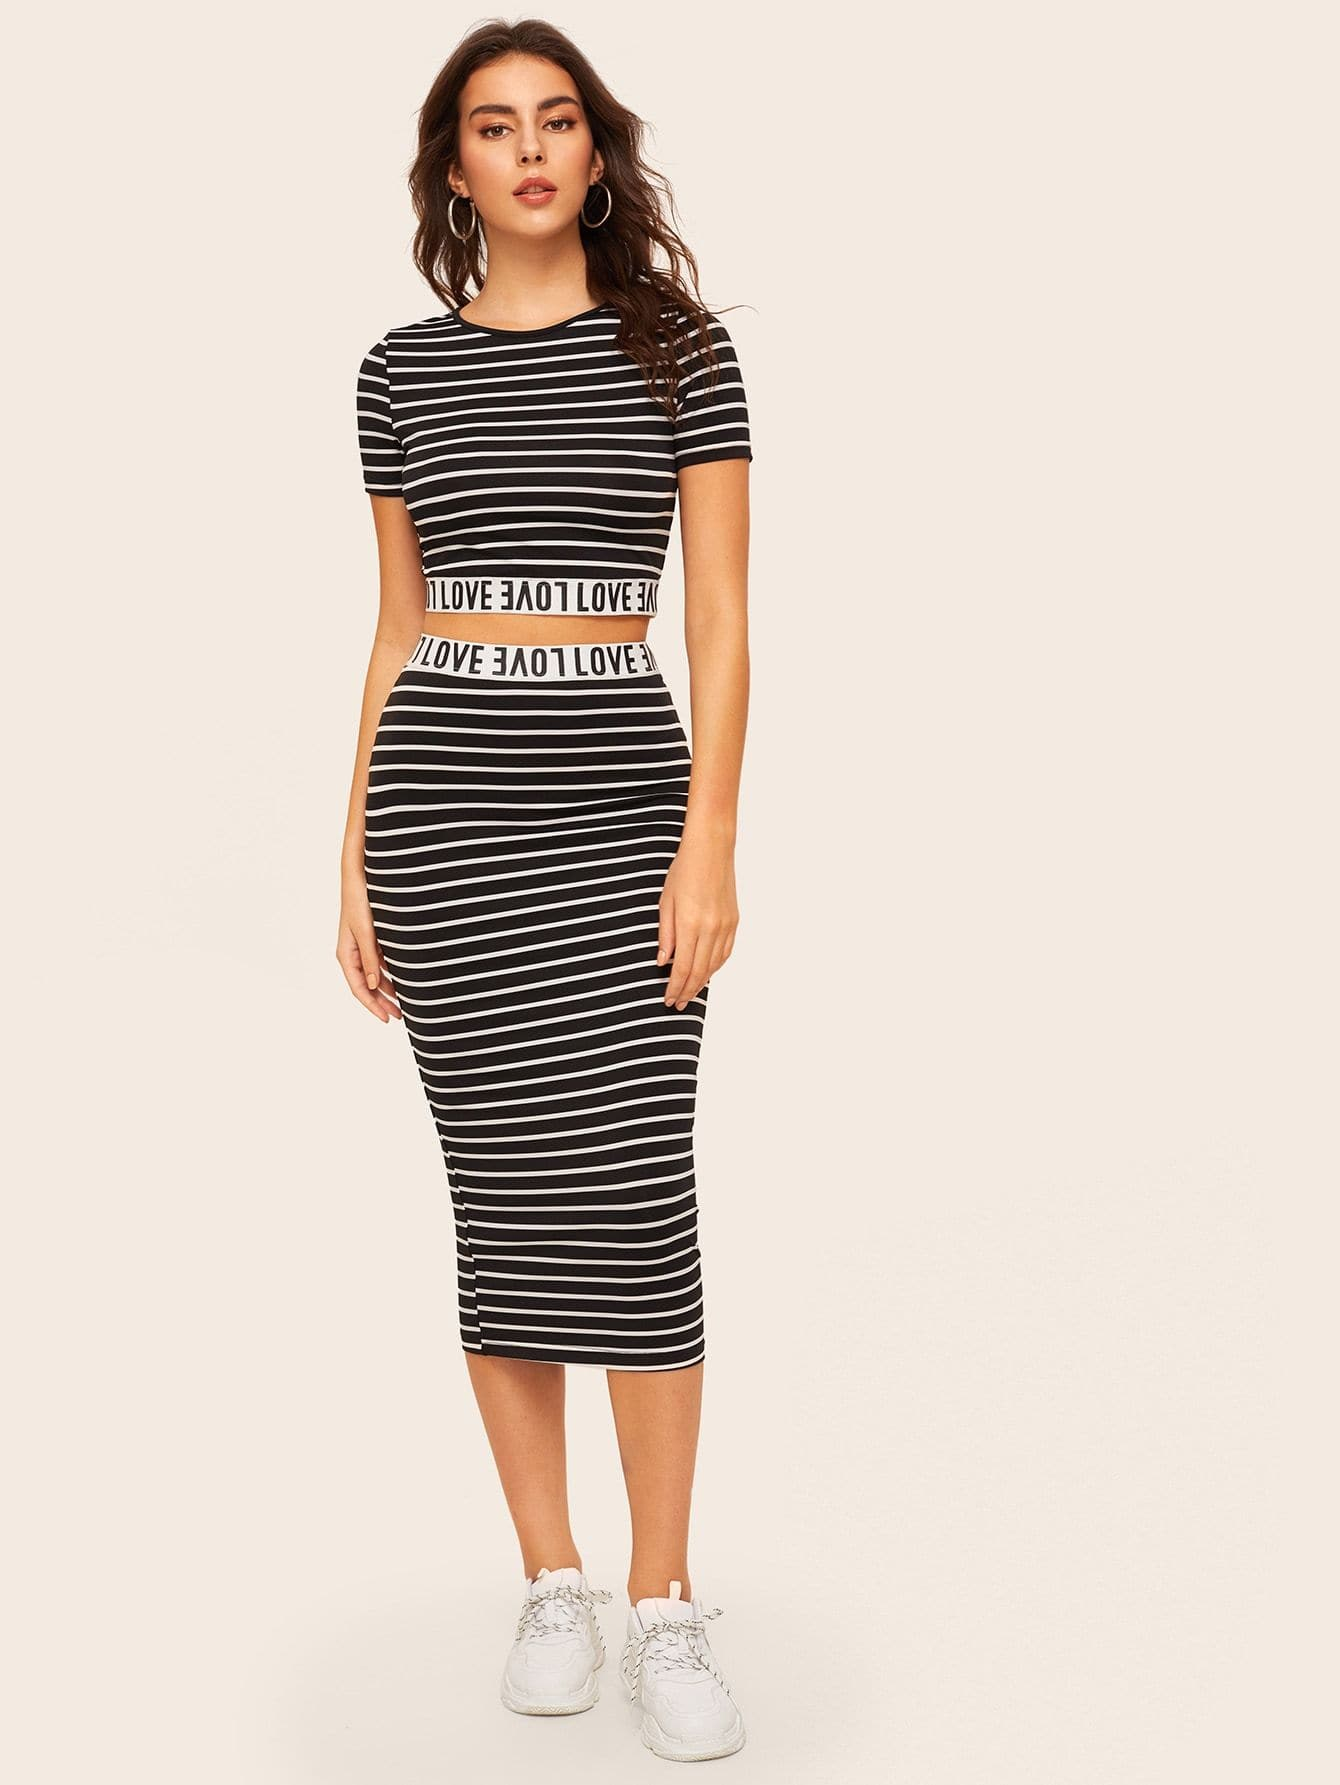 Love Graphic Striped Crop Top & Skirt Set - FLJ CORPORATIONS